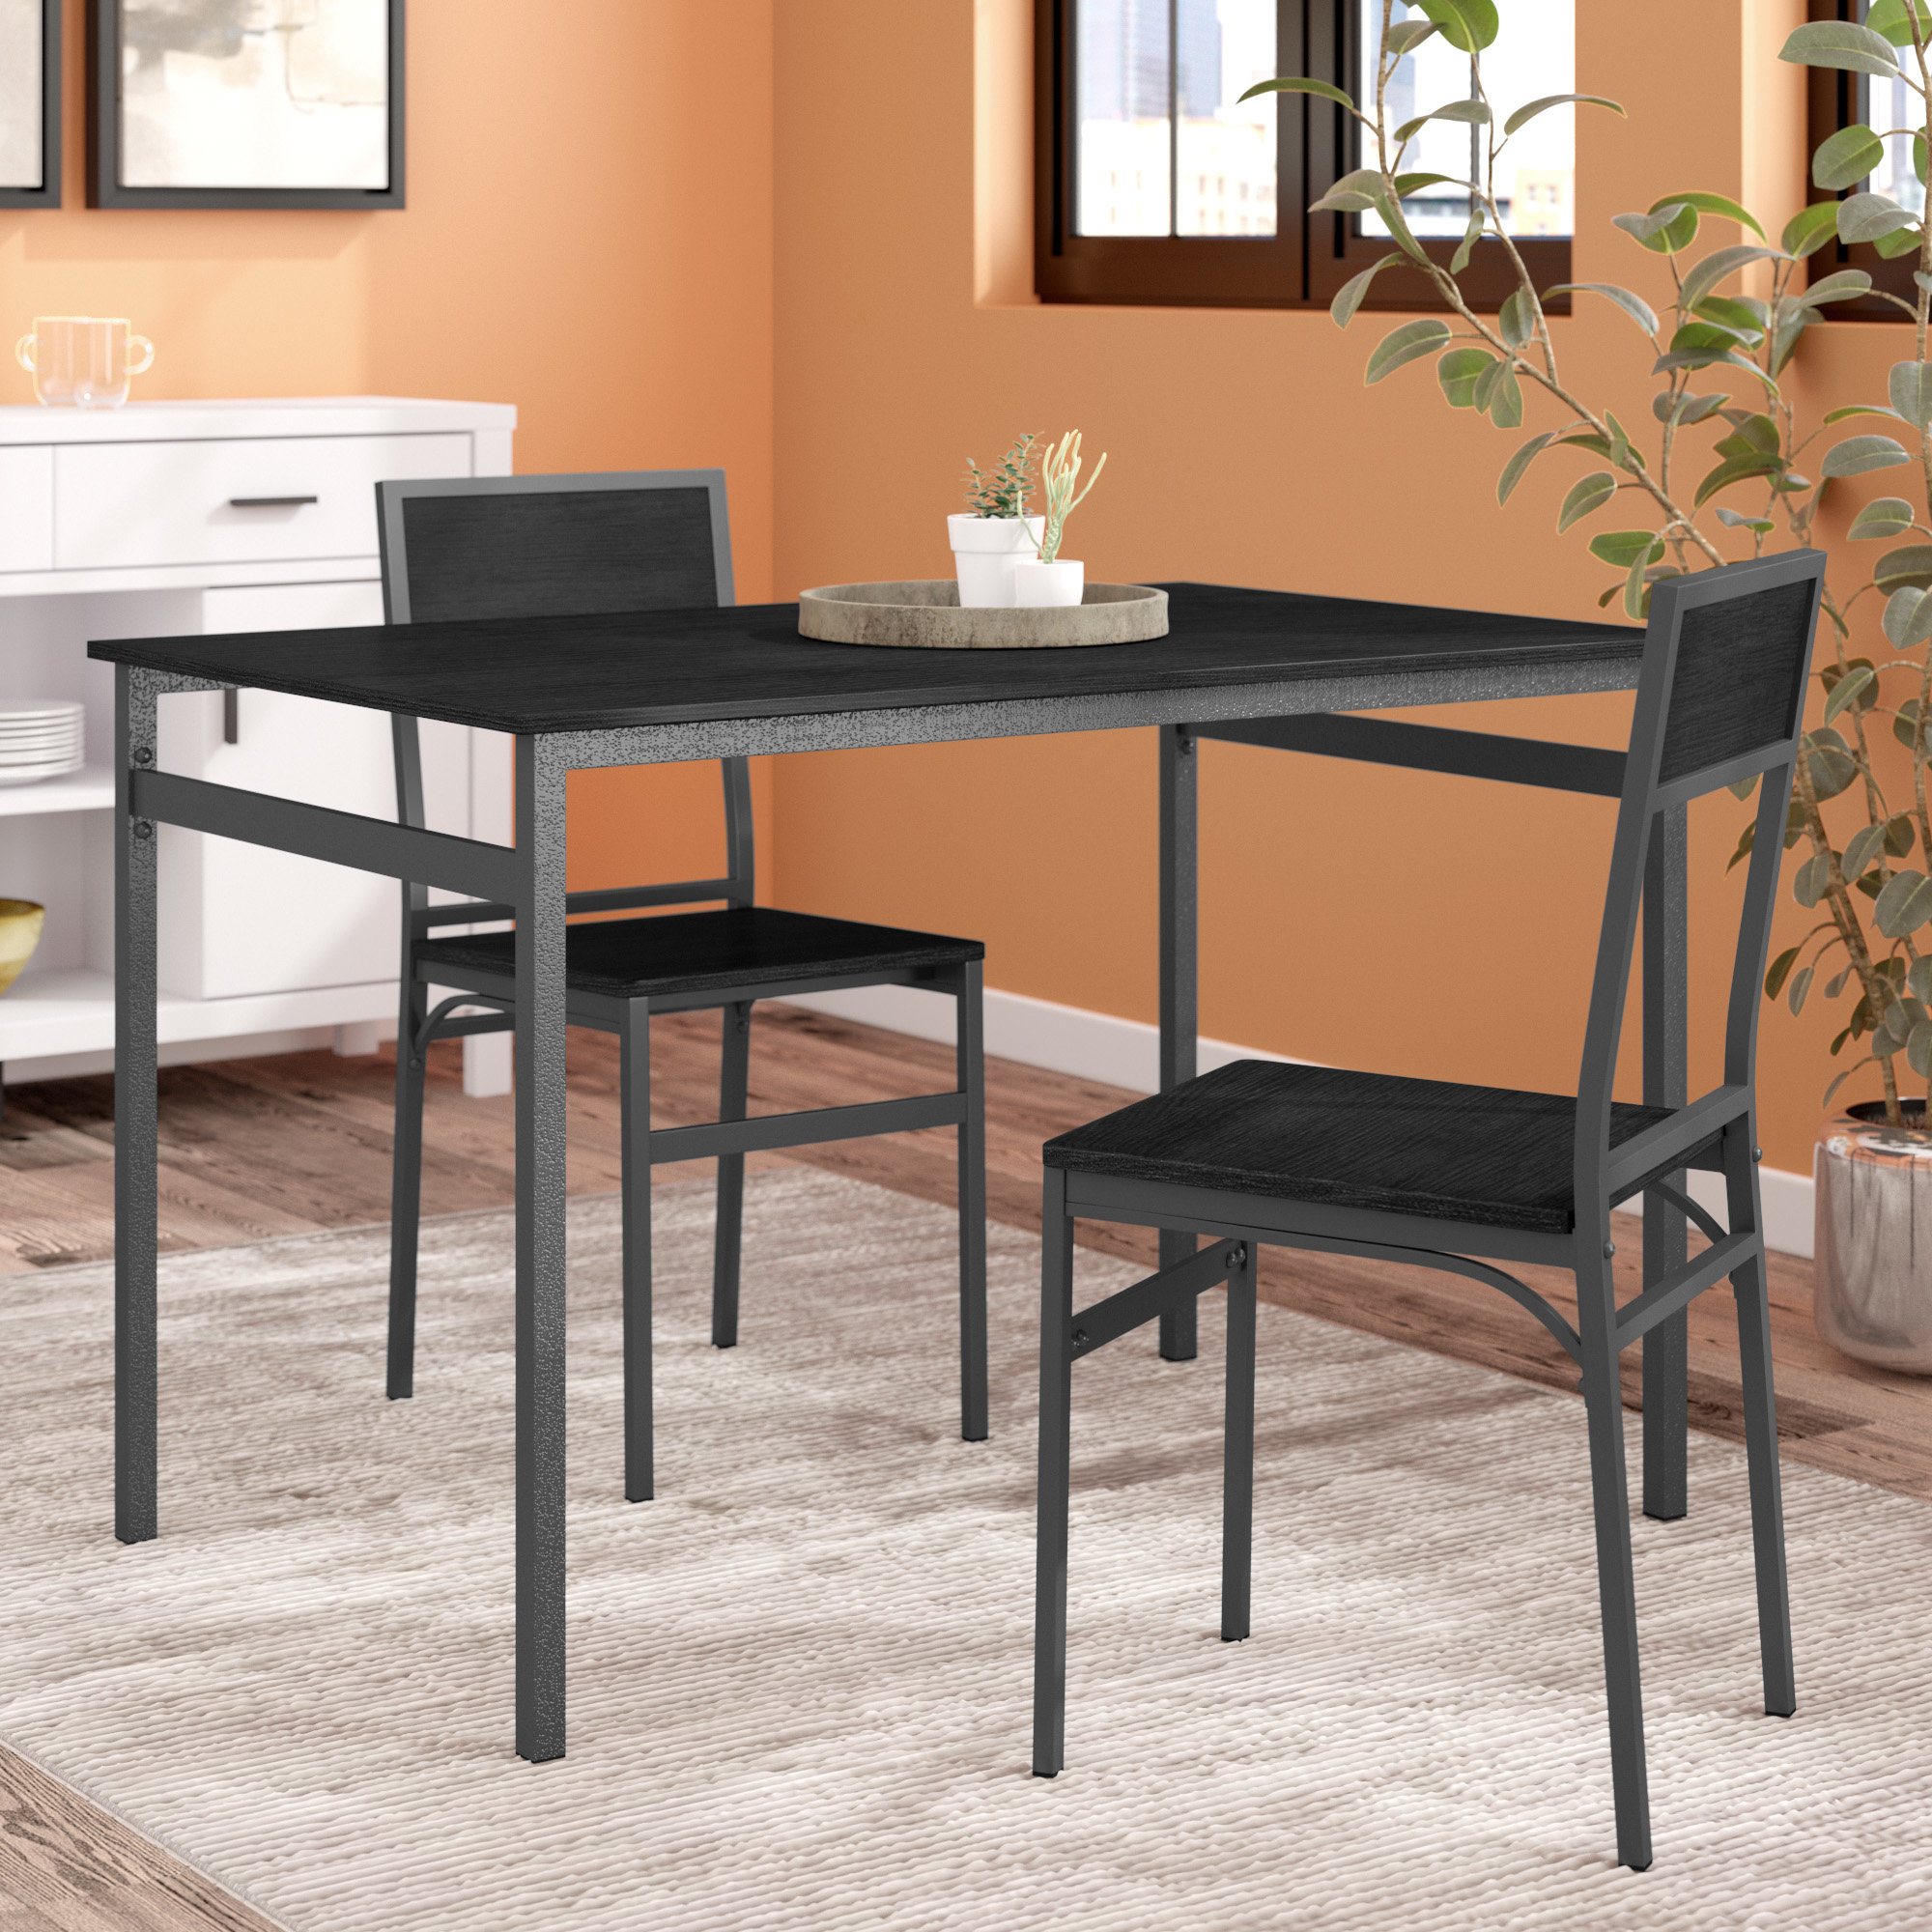 Latitude Run Springfield 3 Piece Dining Set Regarding Most Popular Springfield 3 Piece Dining Sets (Gallery 1 of 20)